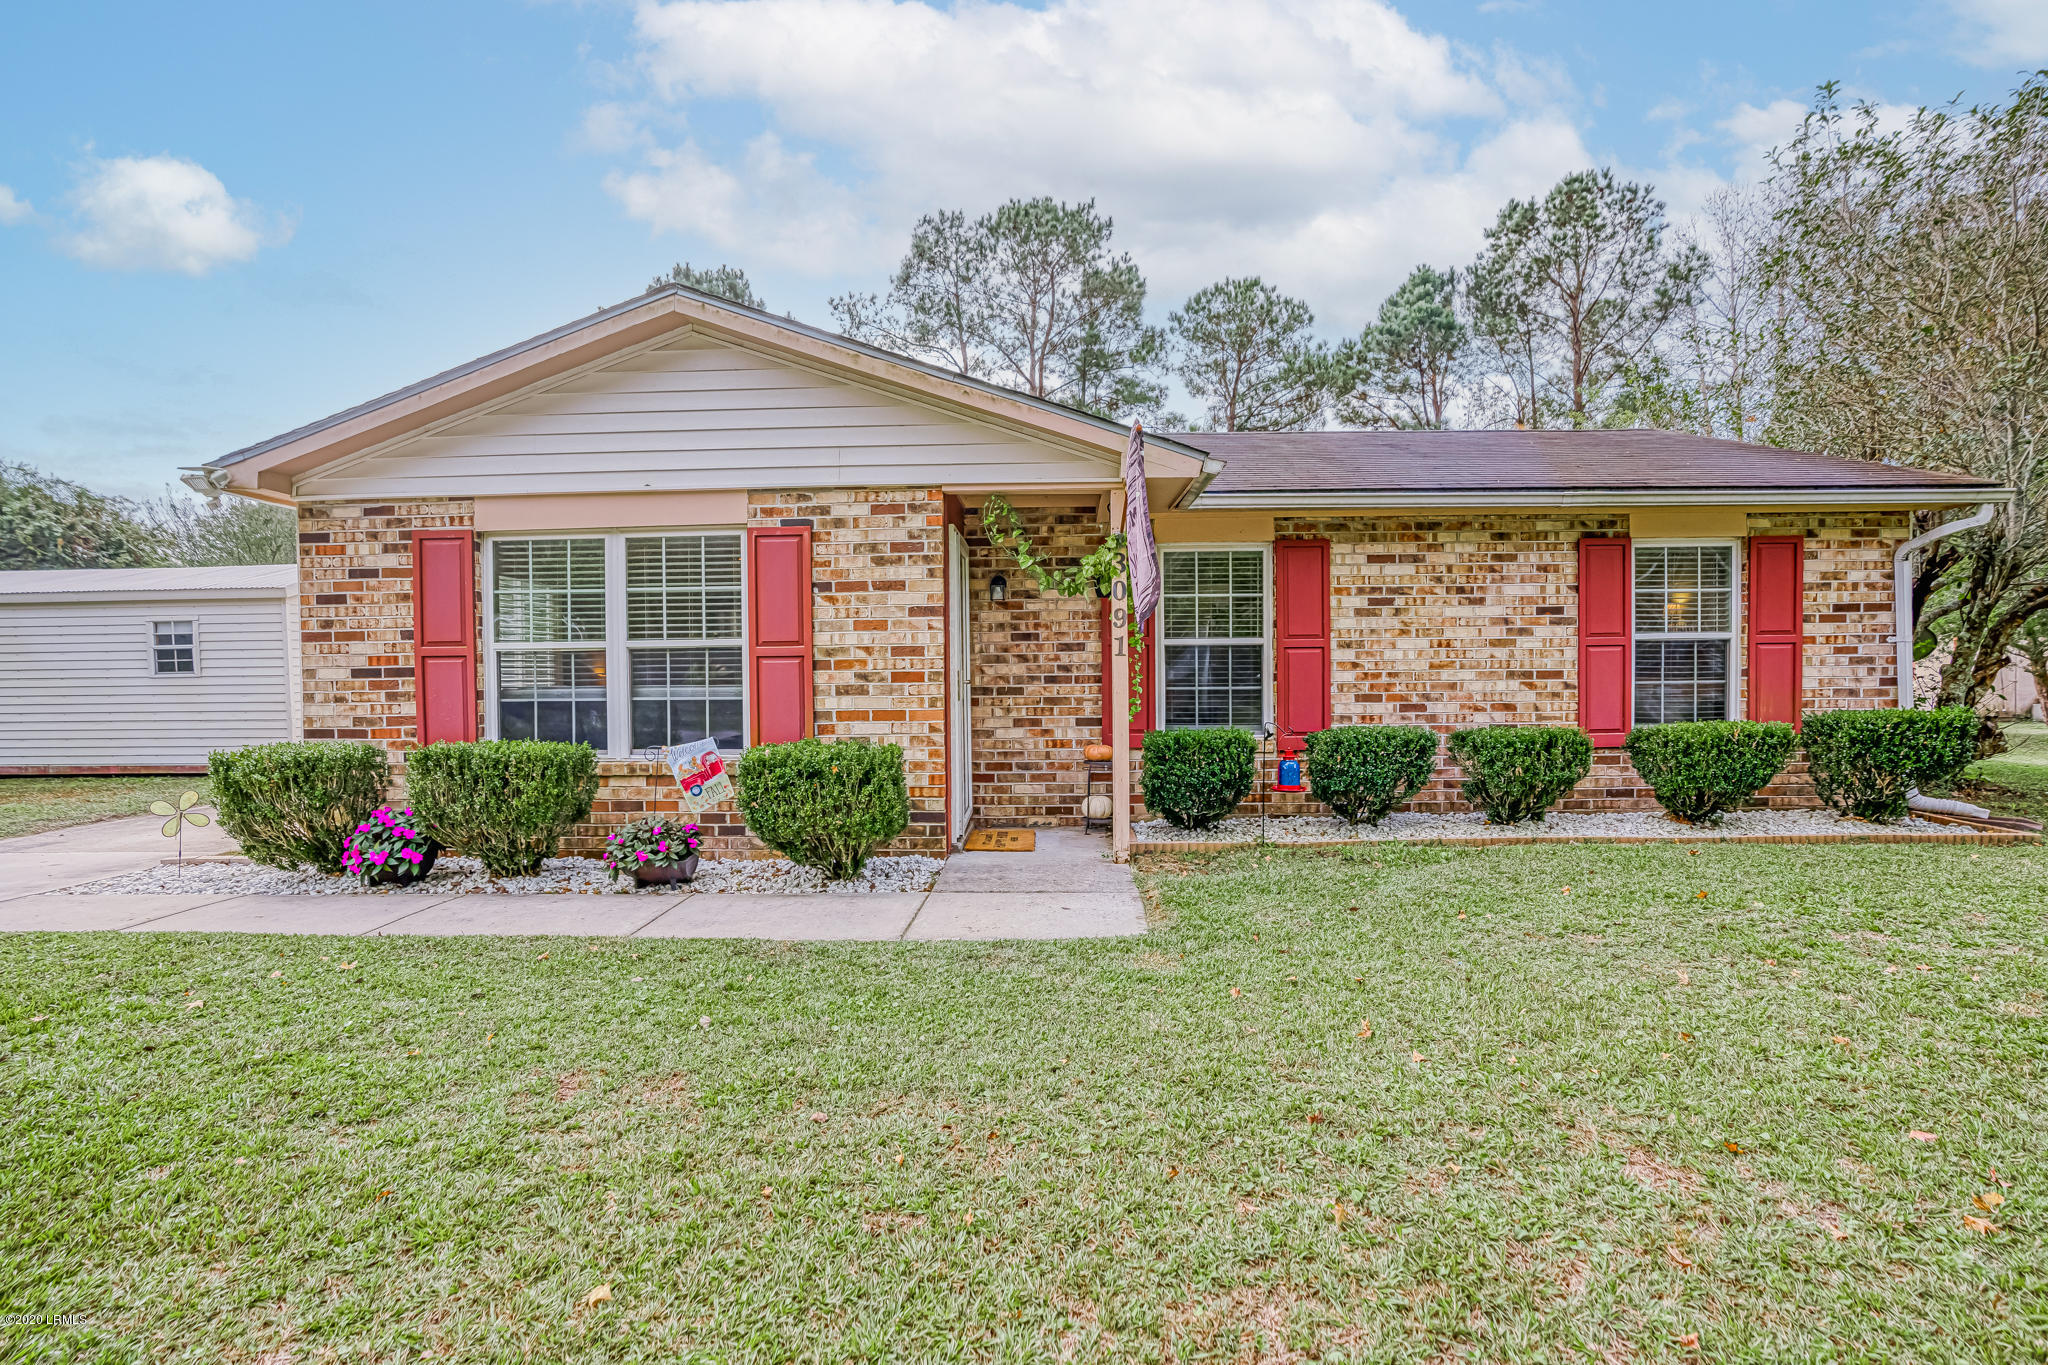 Photo of 3091 Clydesdale Circle, Beaufort, SC 29906